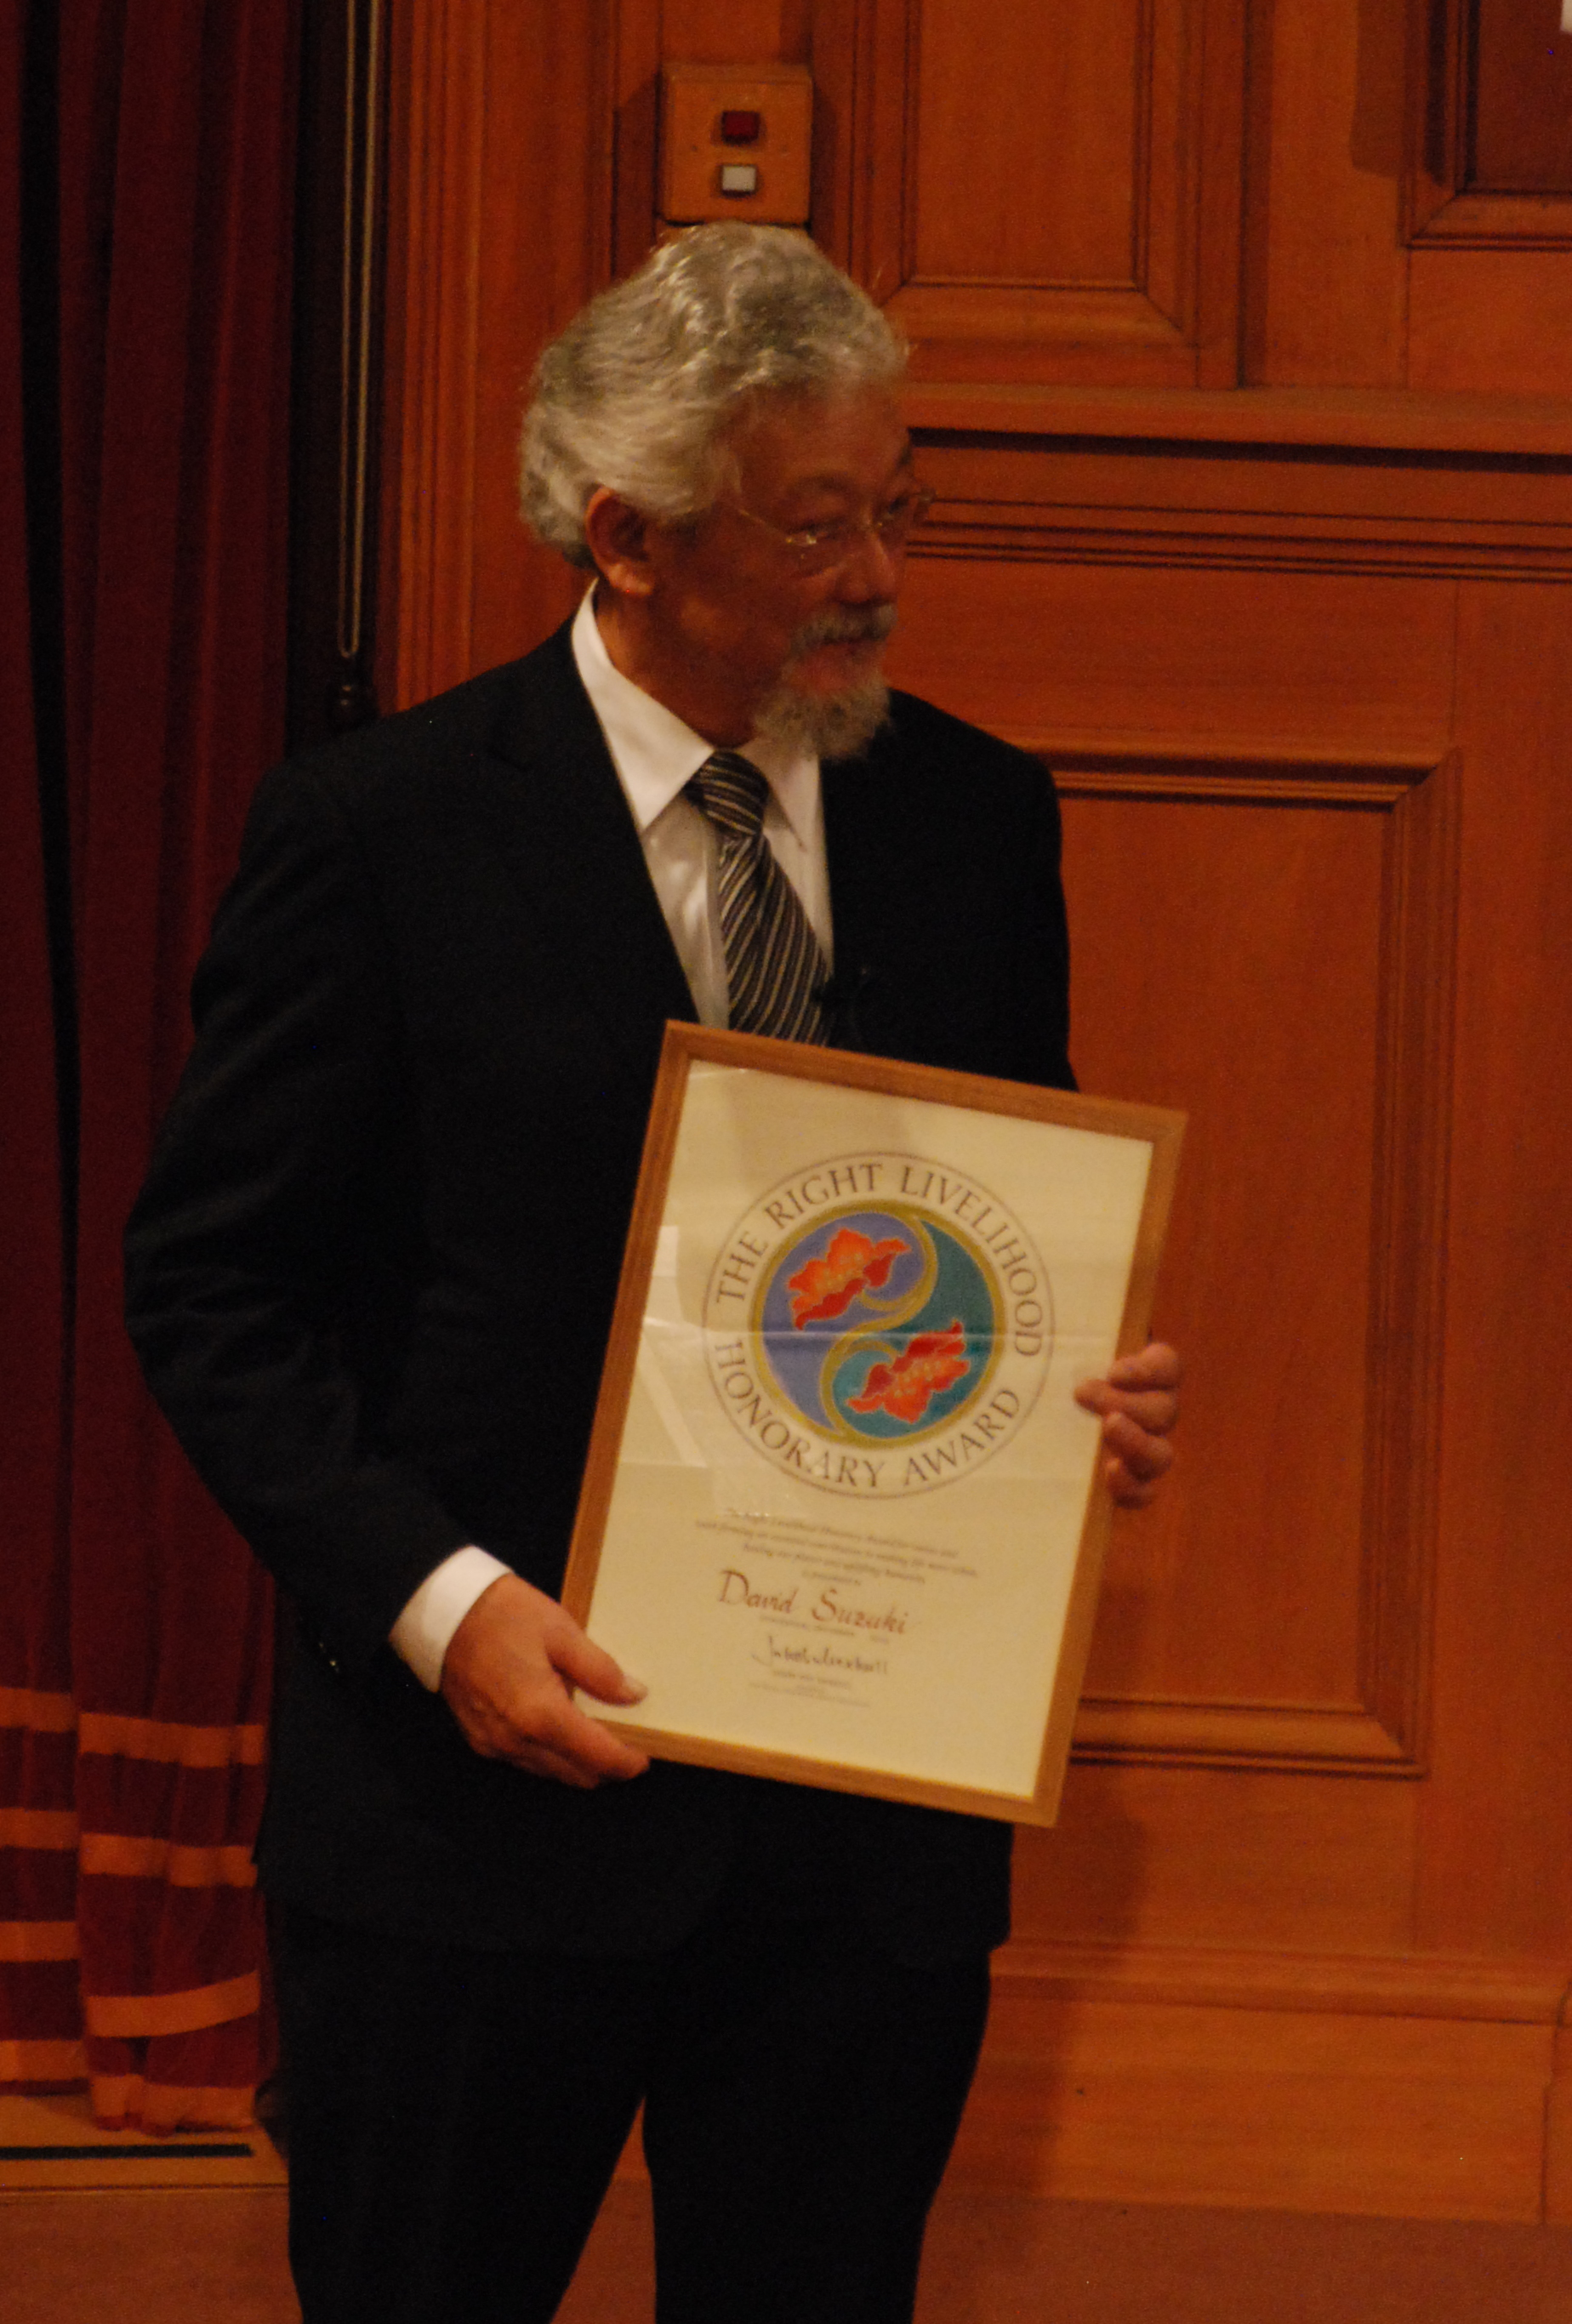 David Suzuki Foundation Wiki